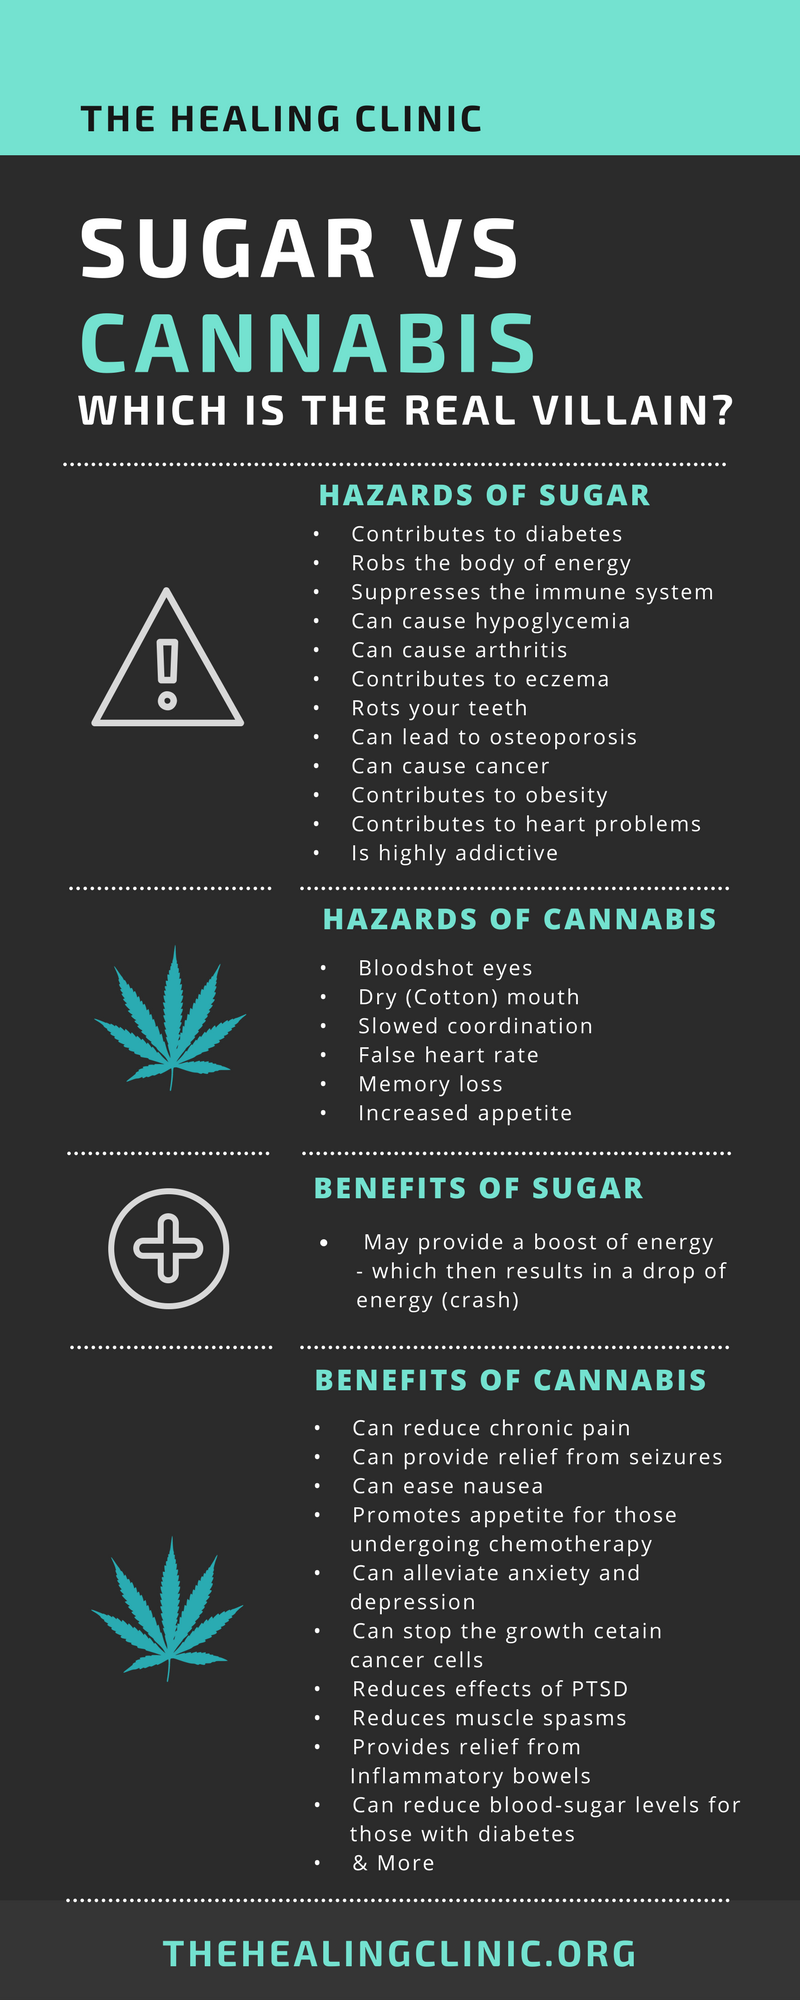 Sugar vs Cannabis